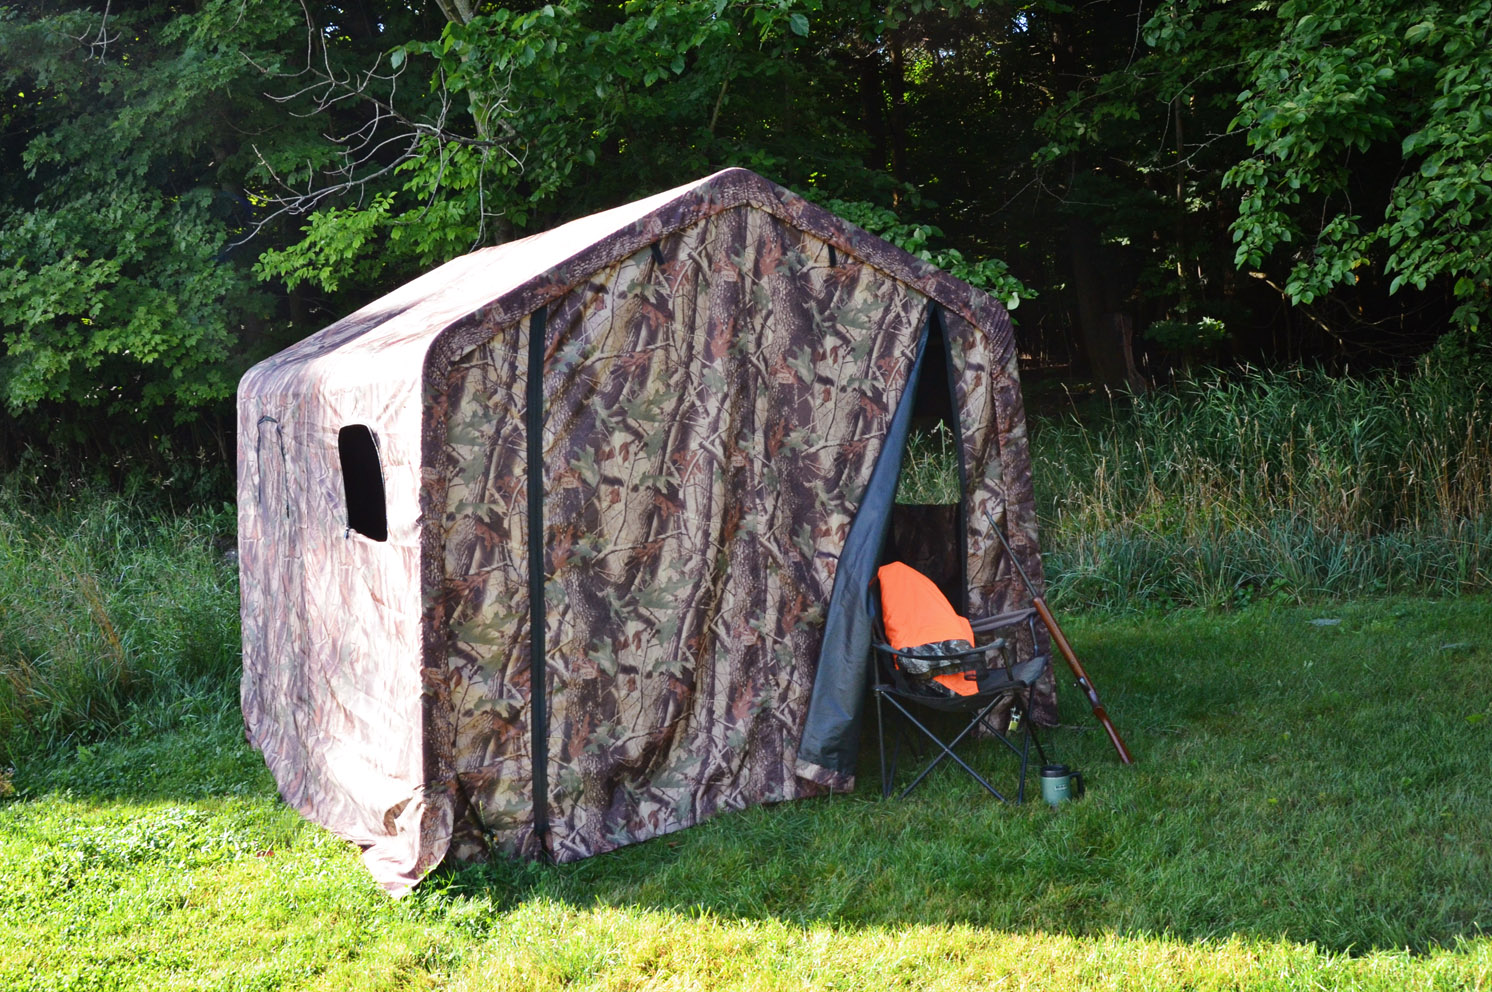 Multi-Purpose Camoflange Shelter 8x8 Feet,Outdoor Hiking Shelter